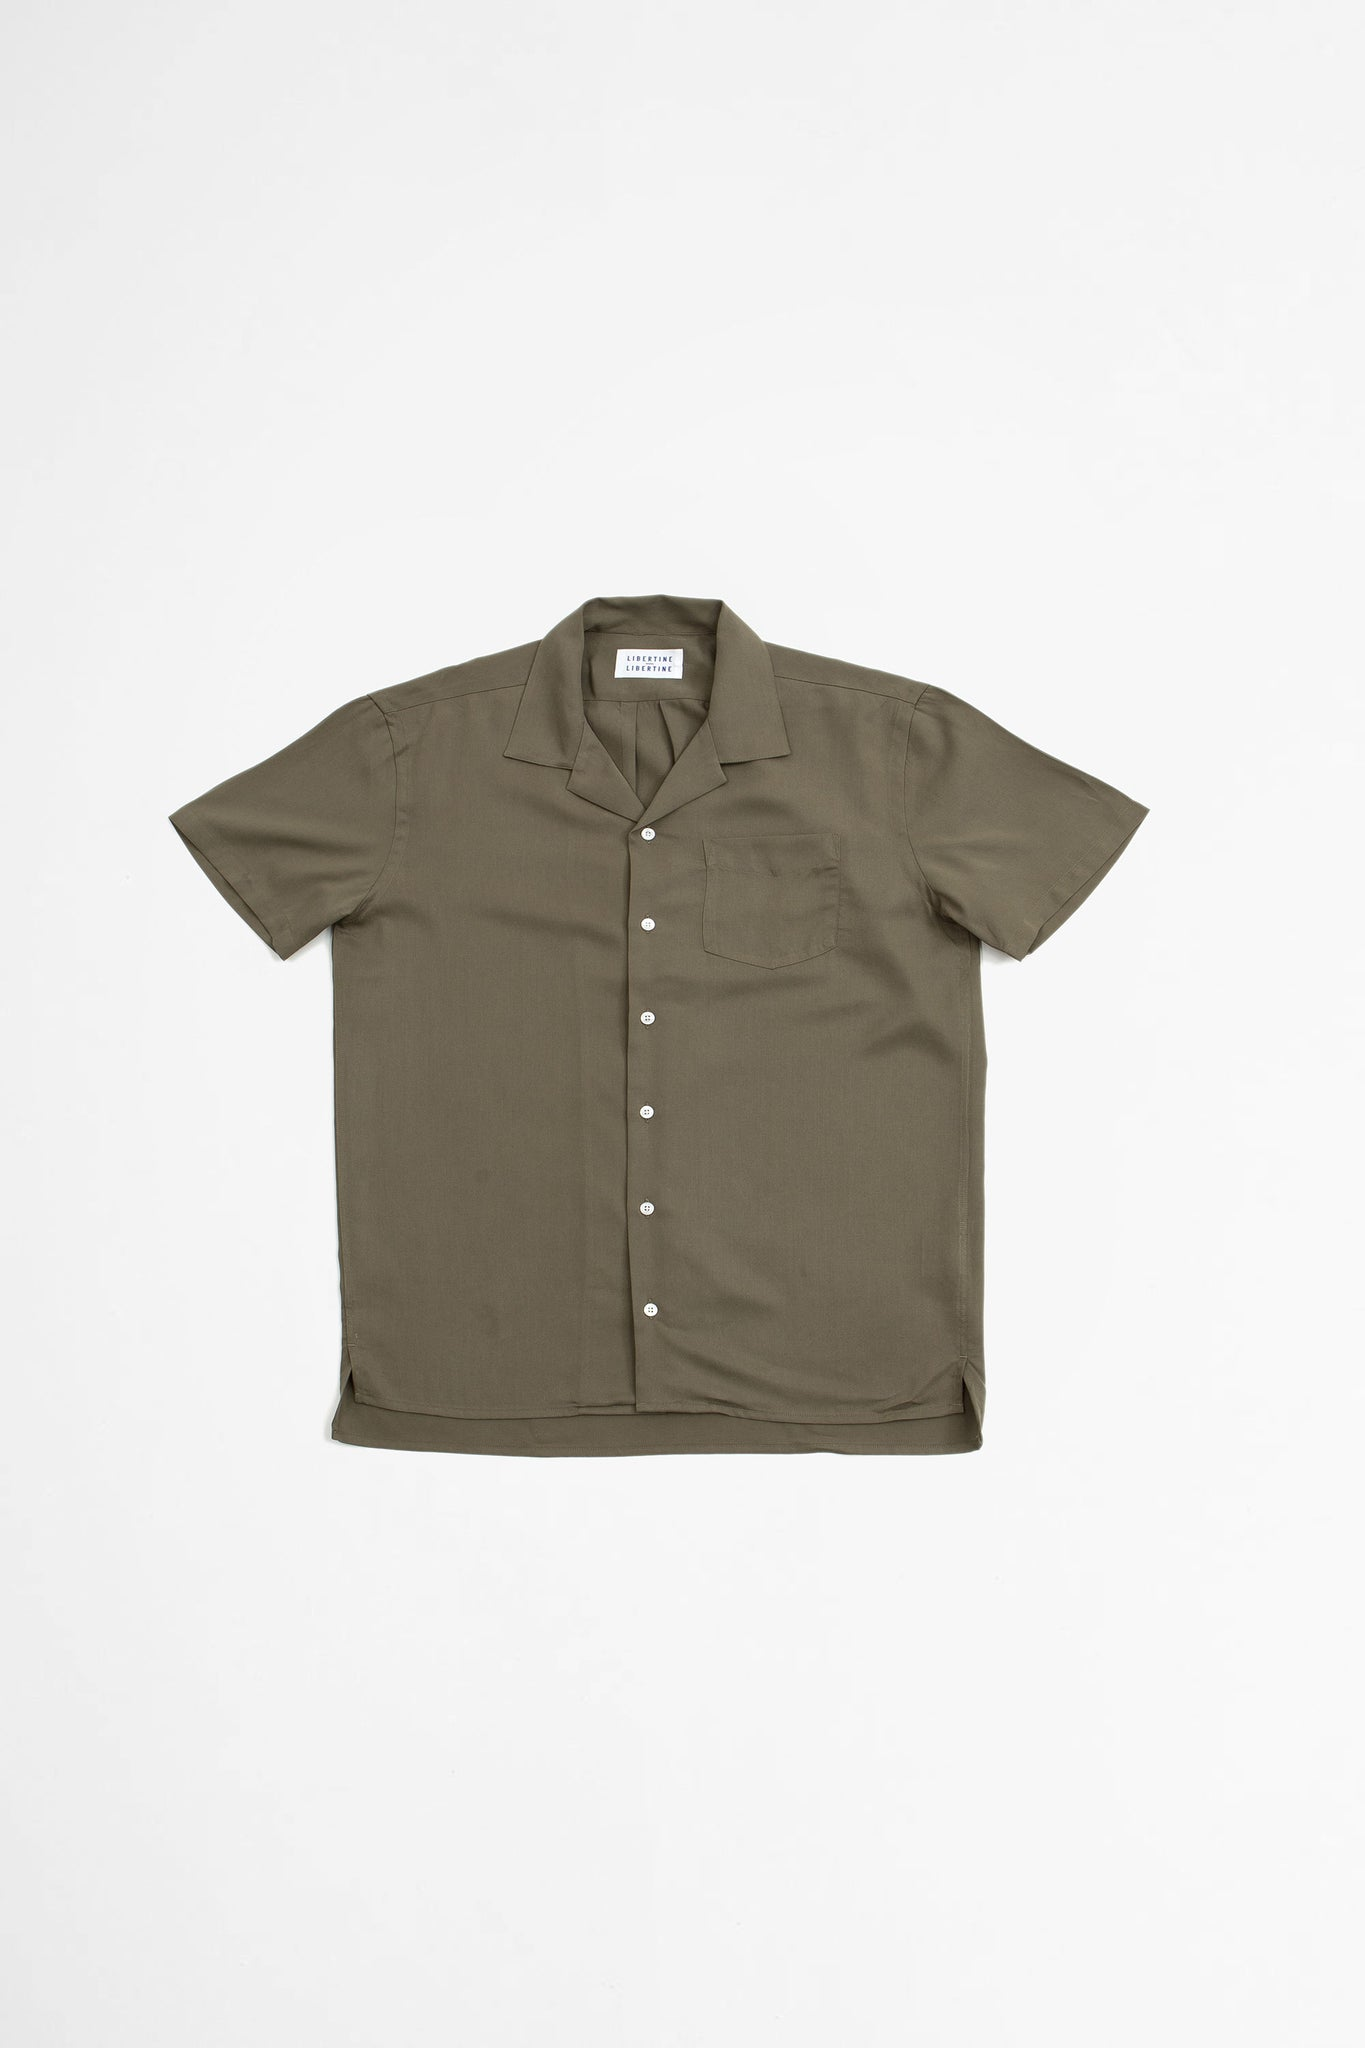 Cave S/S shirt olive